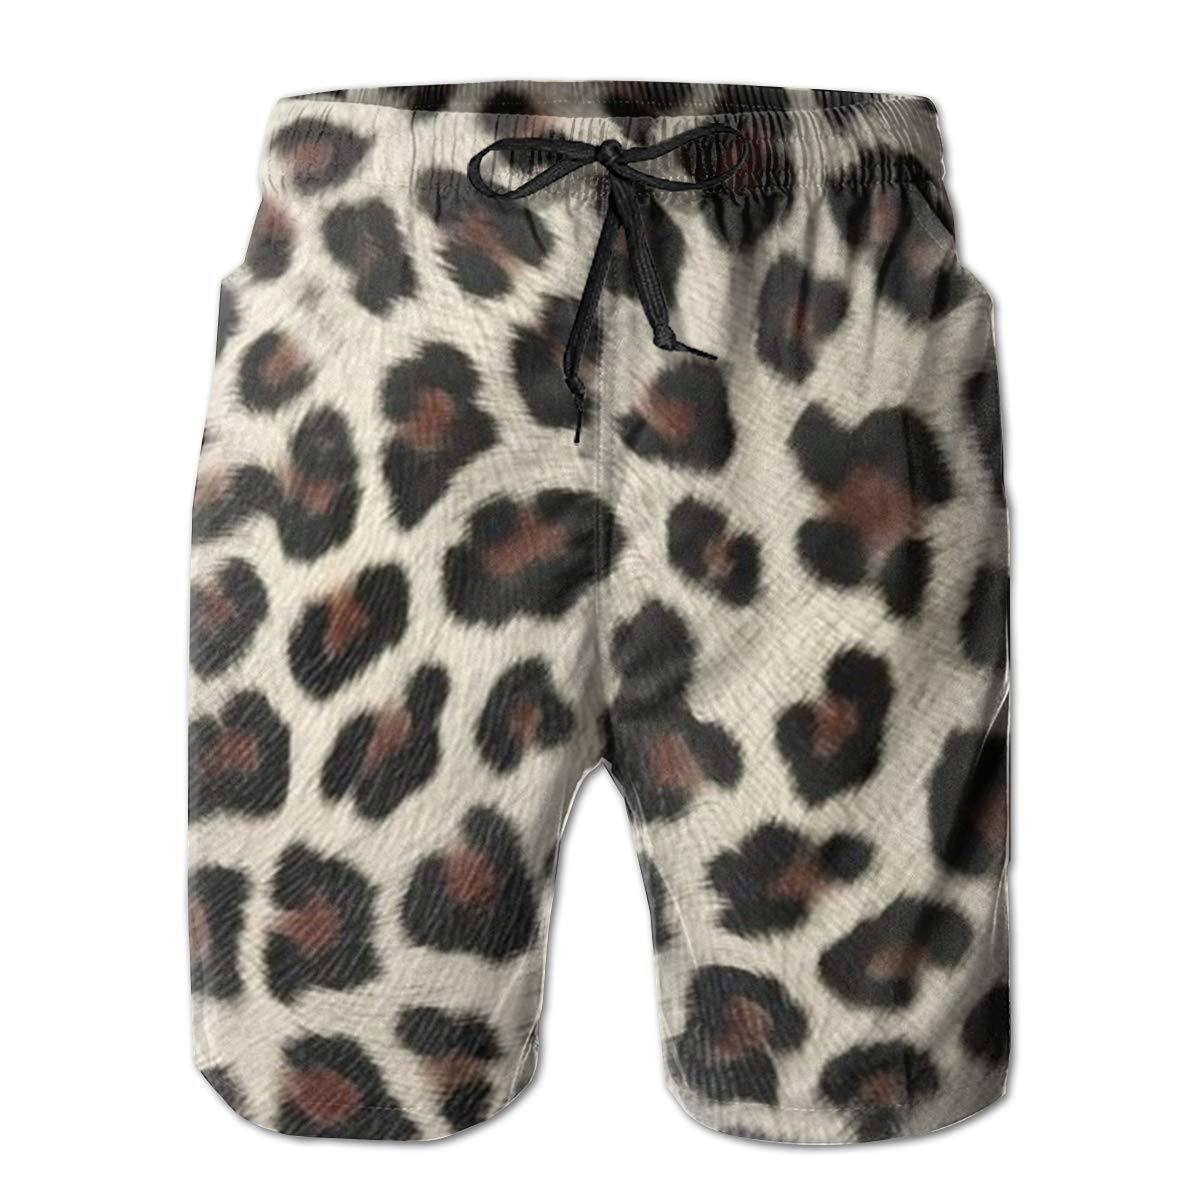 LDFUMG Leopard Graffiti Mens Beach Board Shorts Quick Dry Summer Casual Swimming Soft Fabric with Pocket